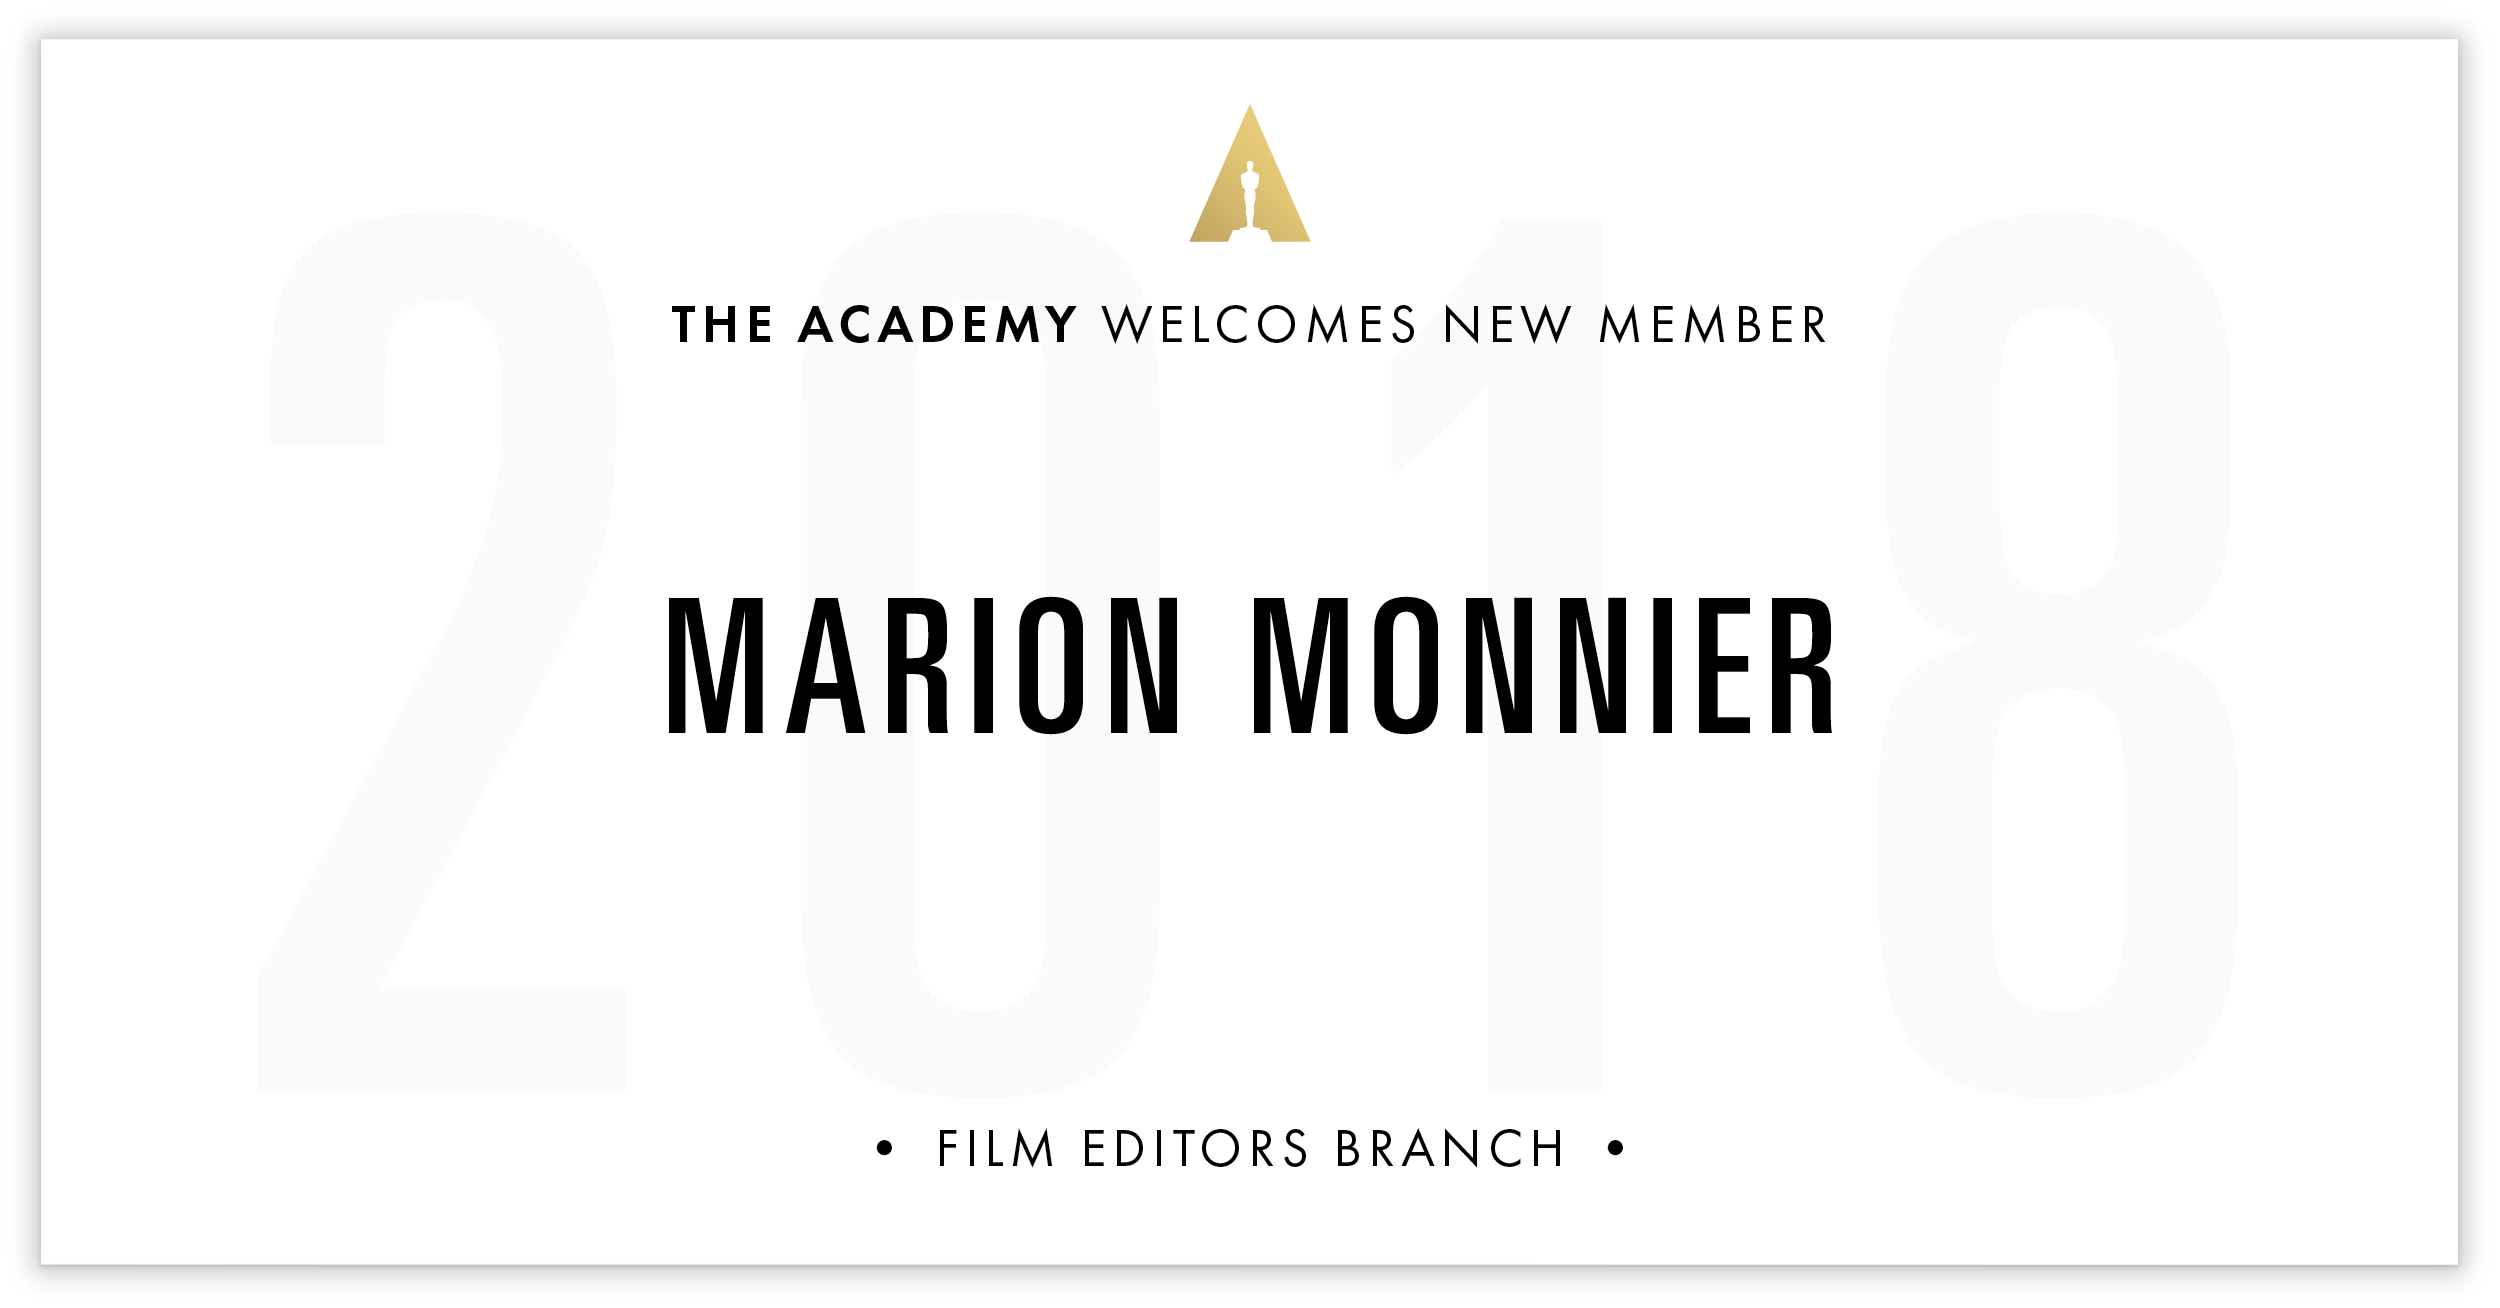 Marion Monnier is invited!